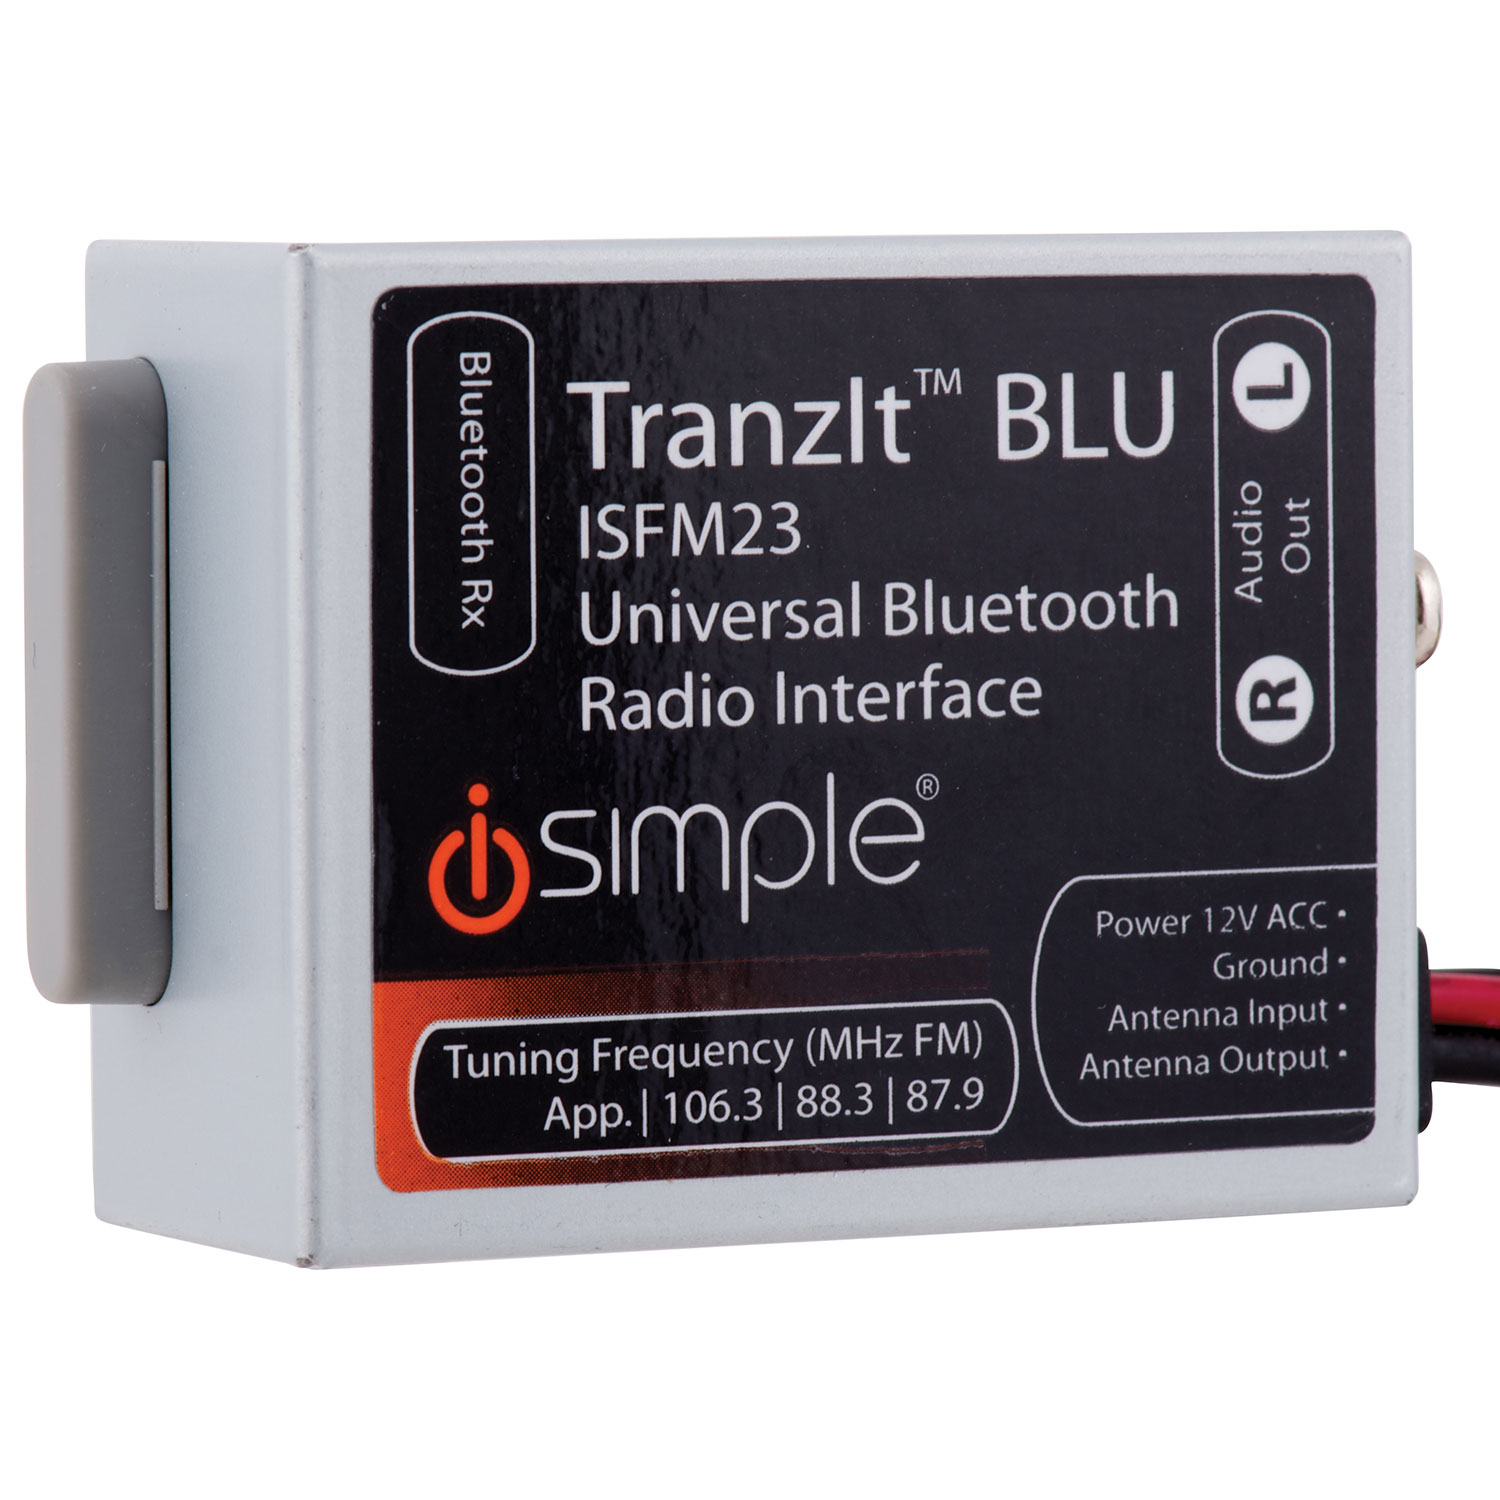 ja bluetooth wiring diagram Images Gallery. isimple tranzitblu bluetooth  transmitter isfm23c oem integration rh bestbuy ca